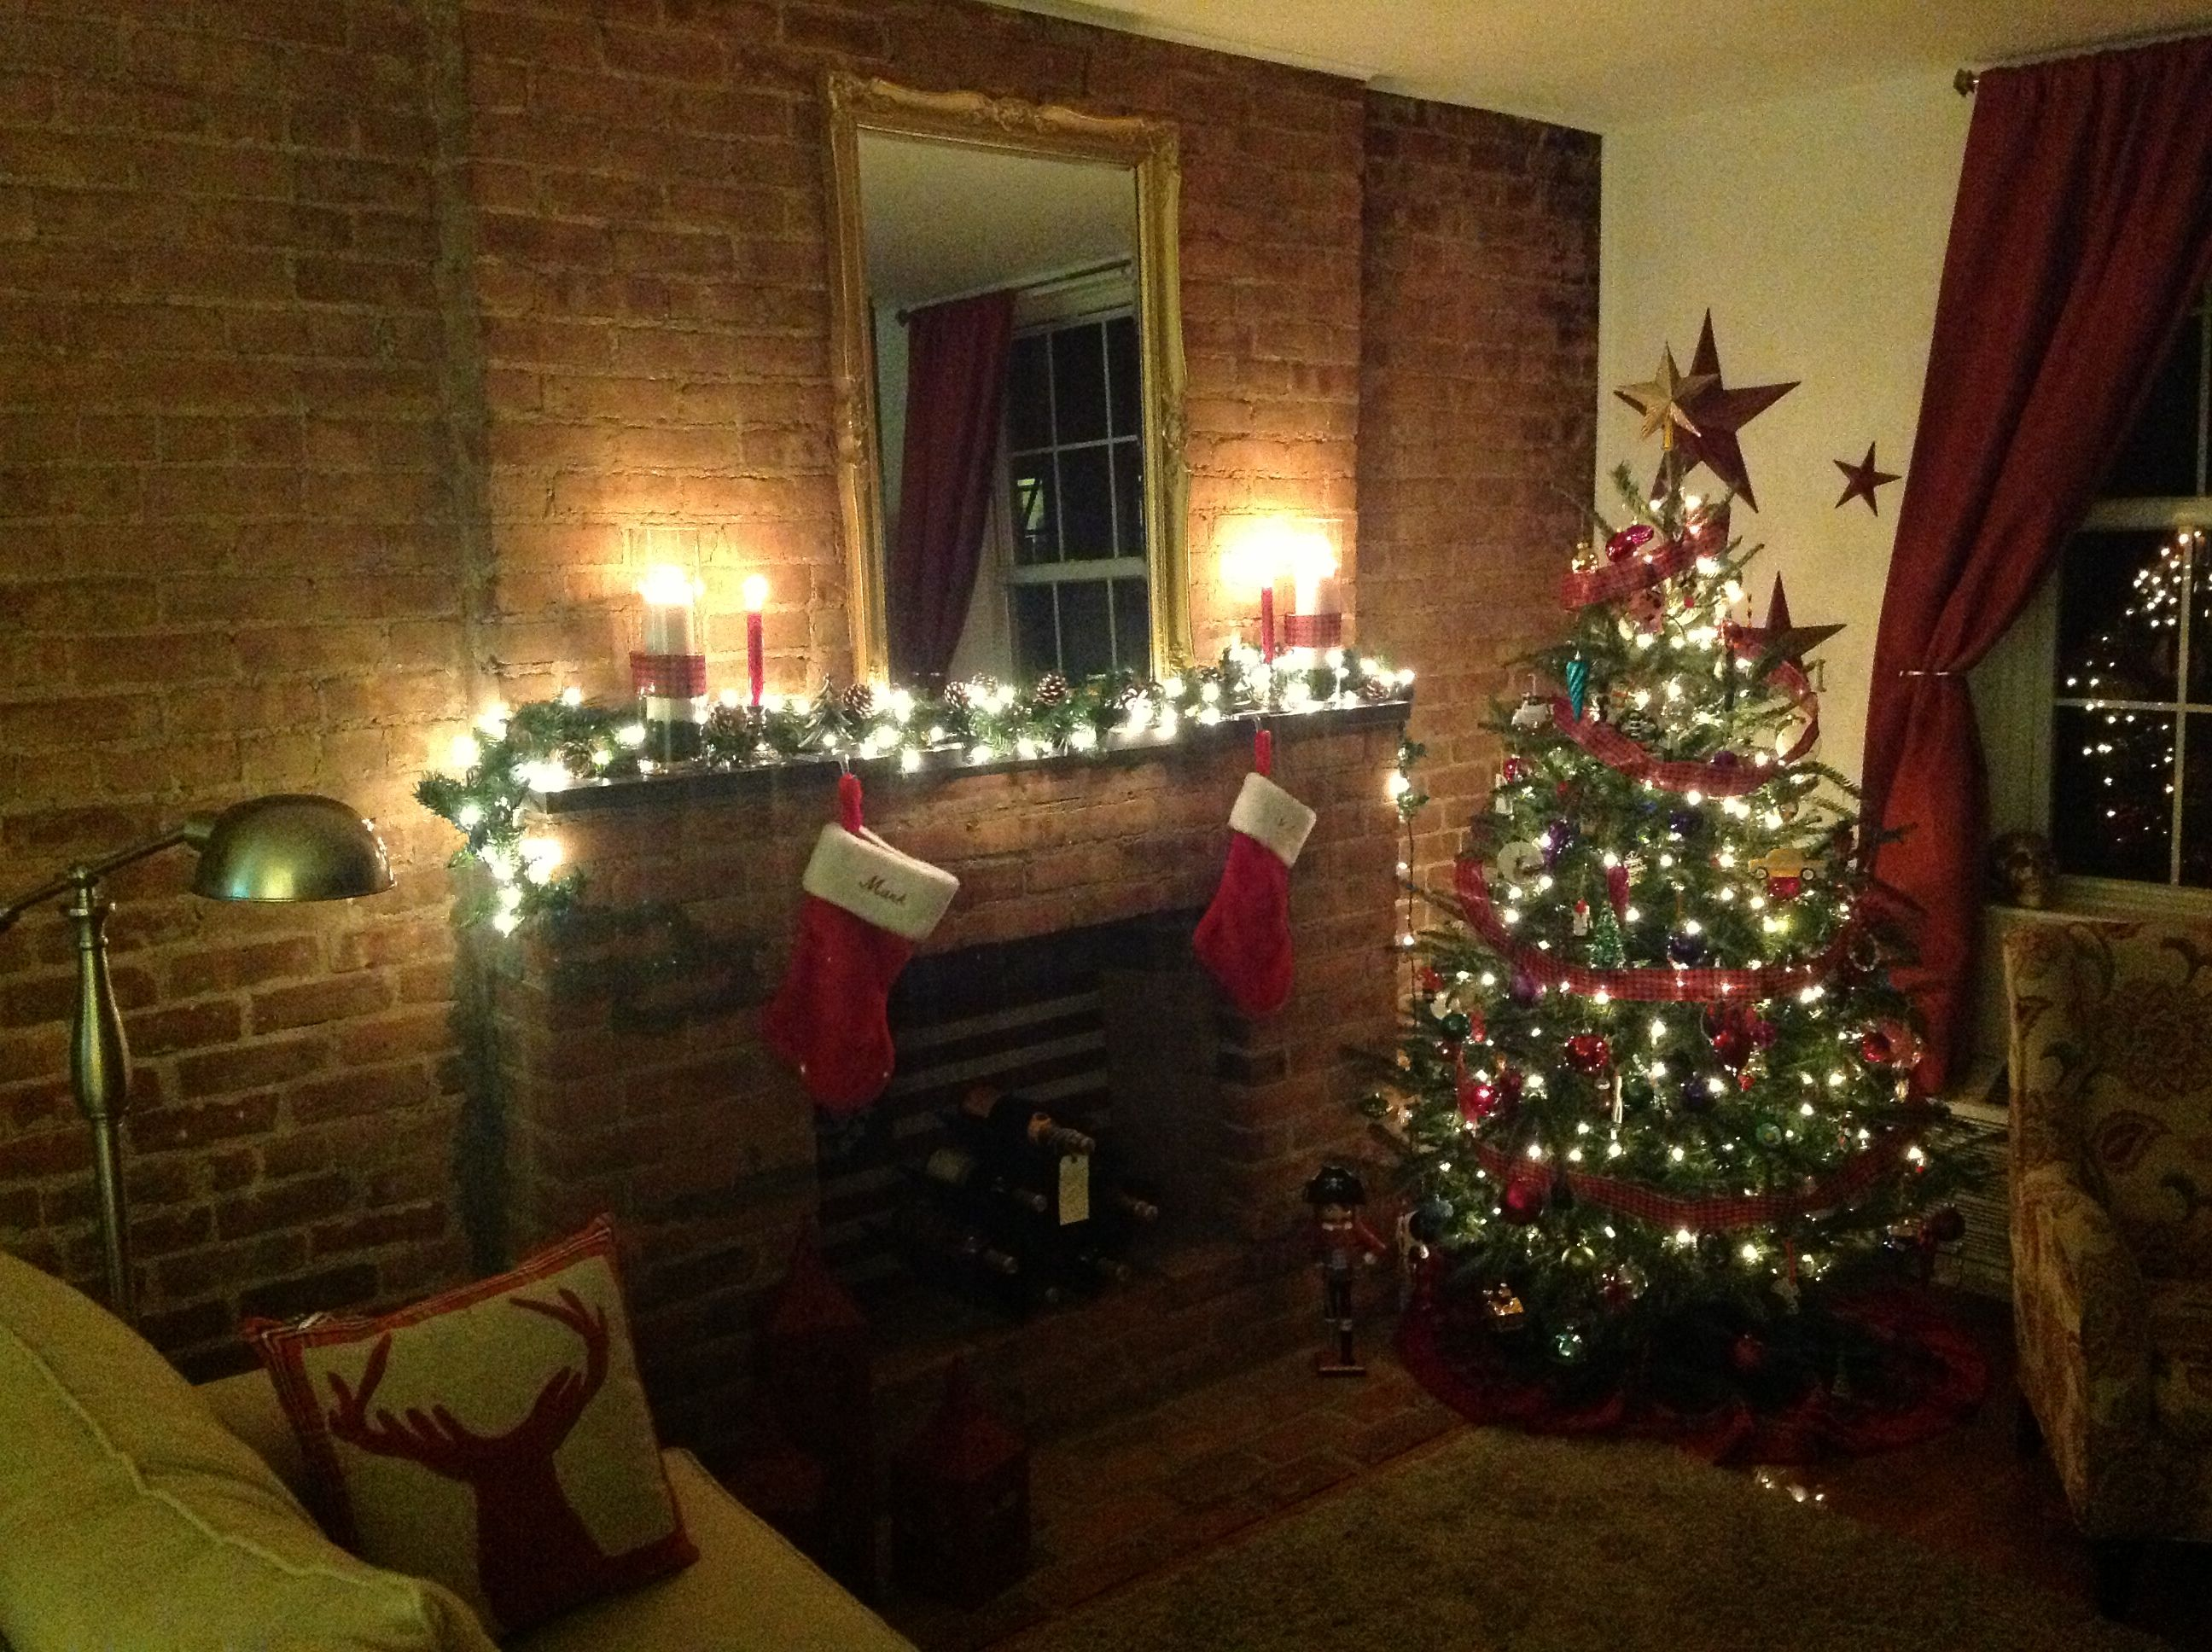 Melissa and Mark Beards NYC apartment is all decked out for